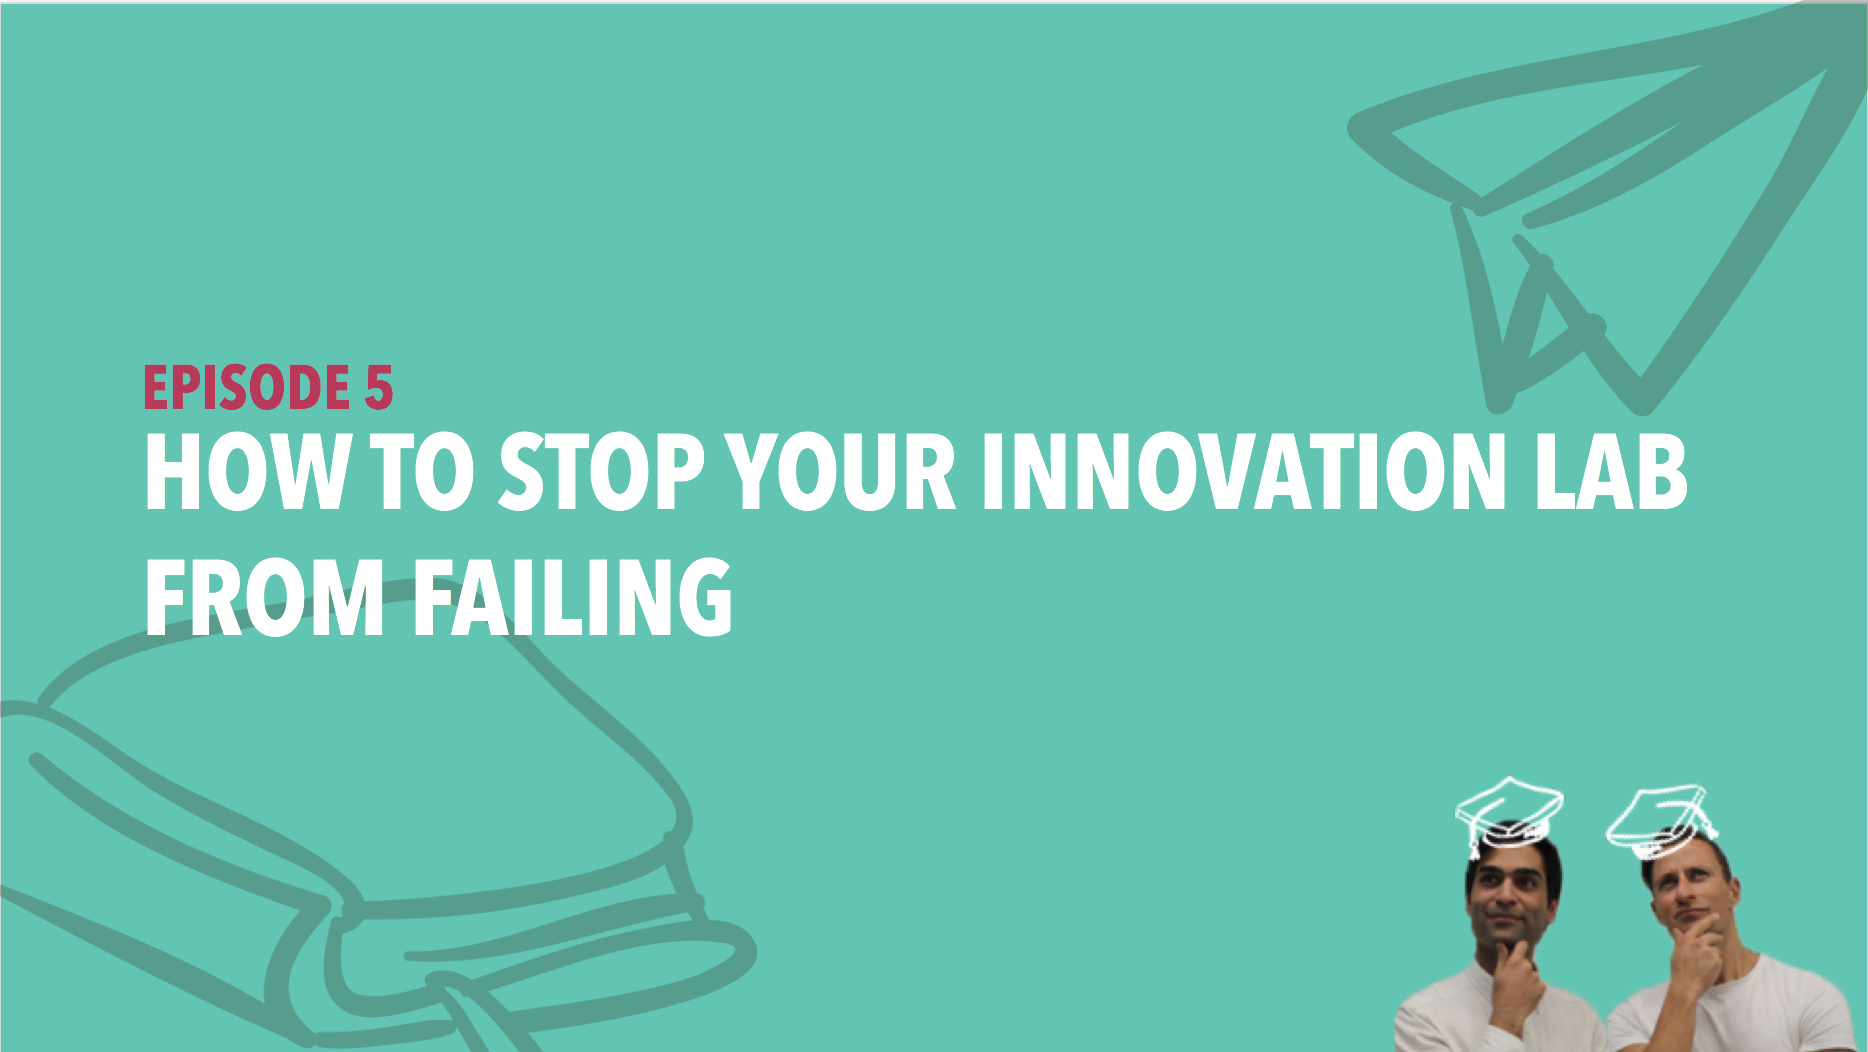 CiSchool Episode #005: How to stop your innovation lab from failing